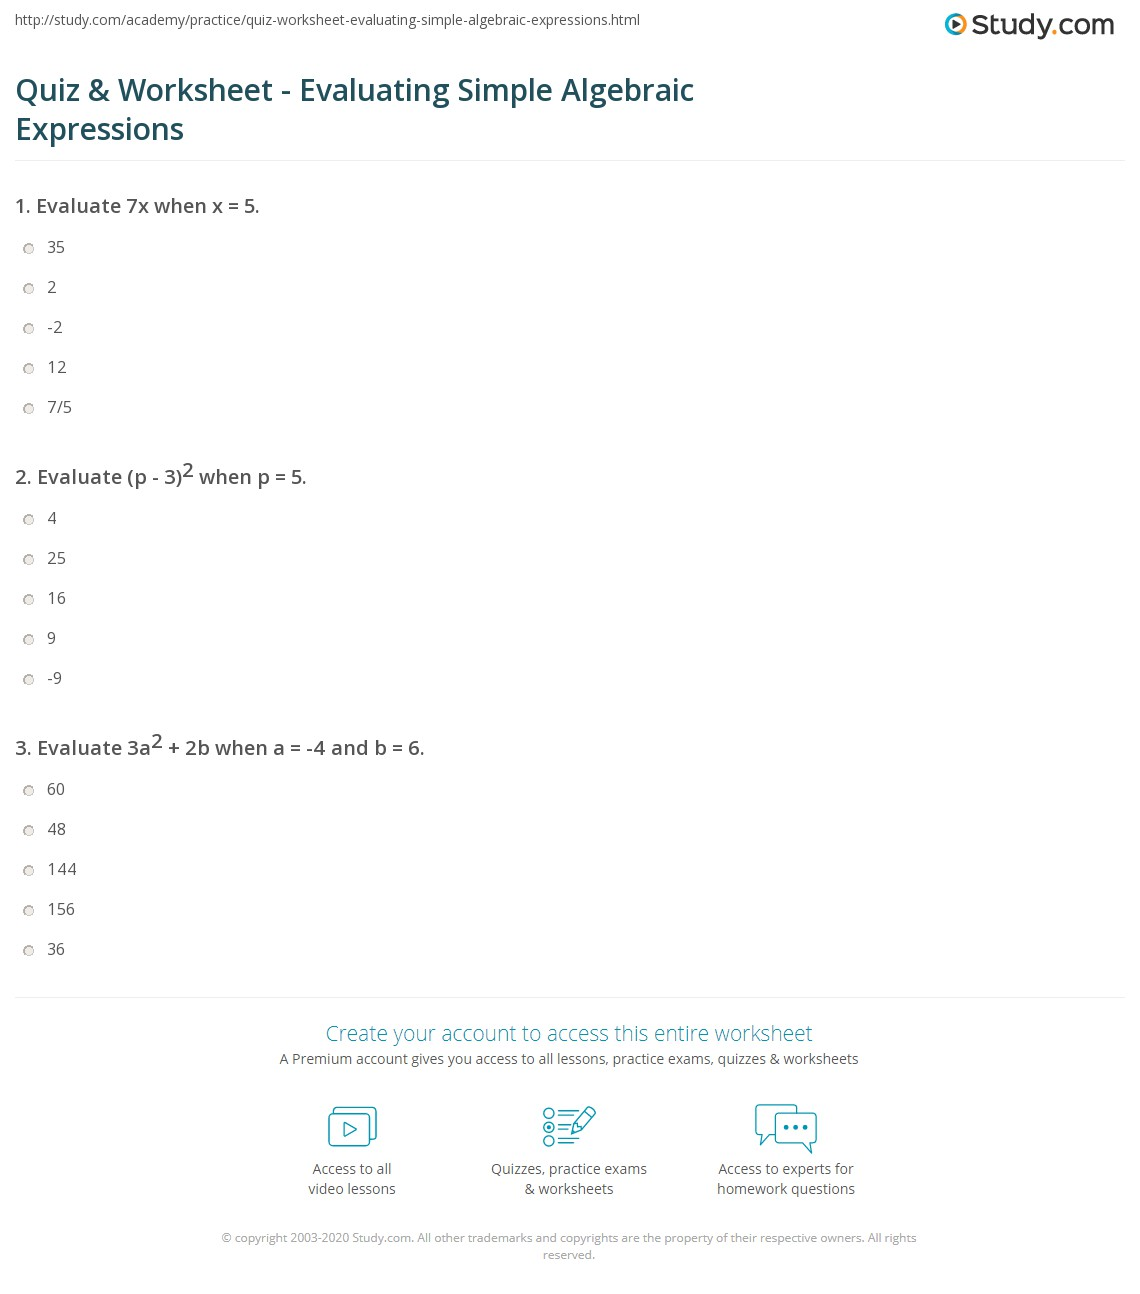 Printables Evaluating Algebraic Expressions Worksheet quiz worksheet evaluating simple algebraic expressions study com print worksheet